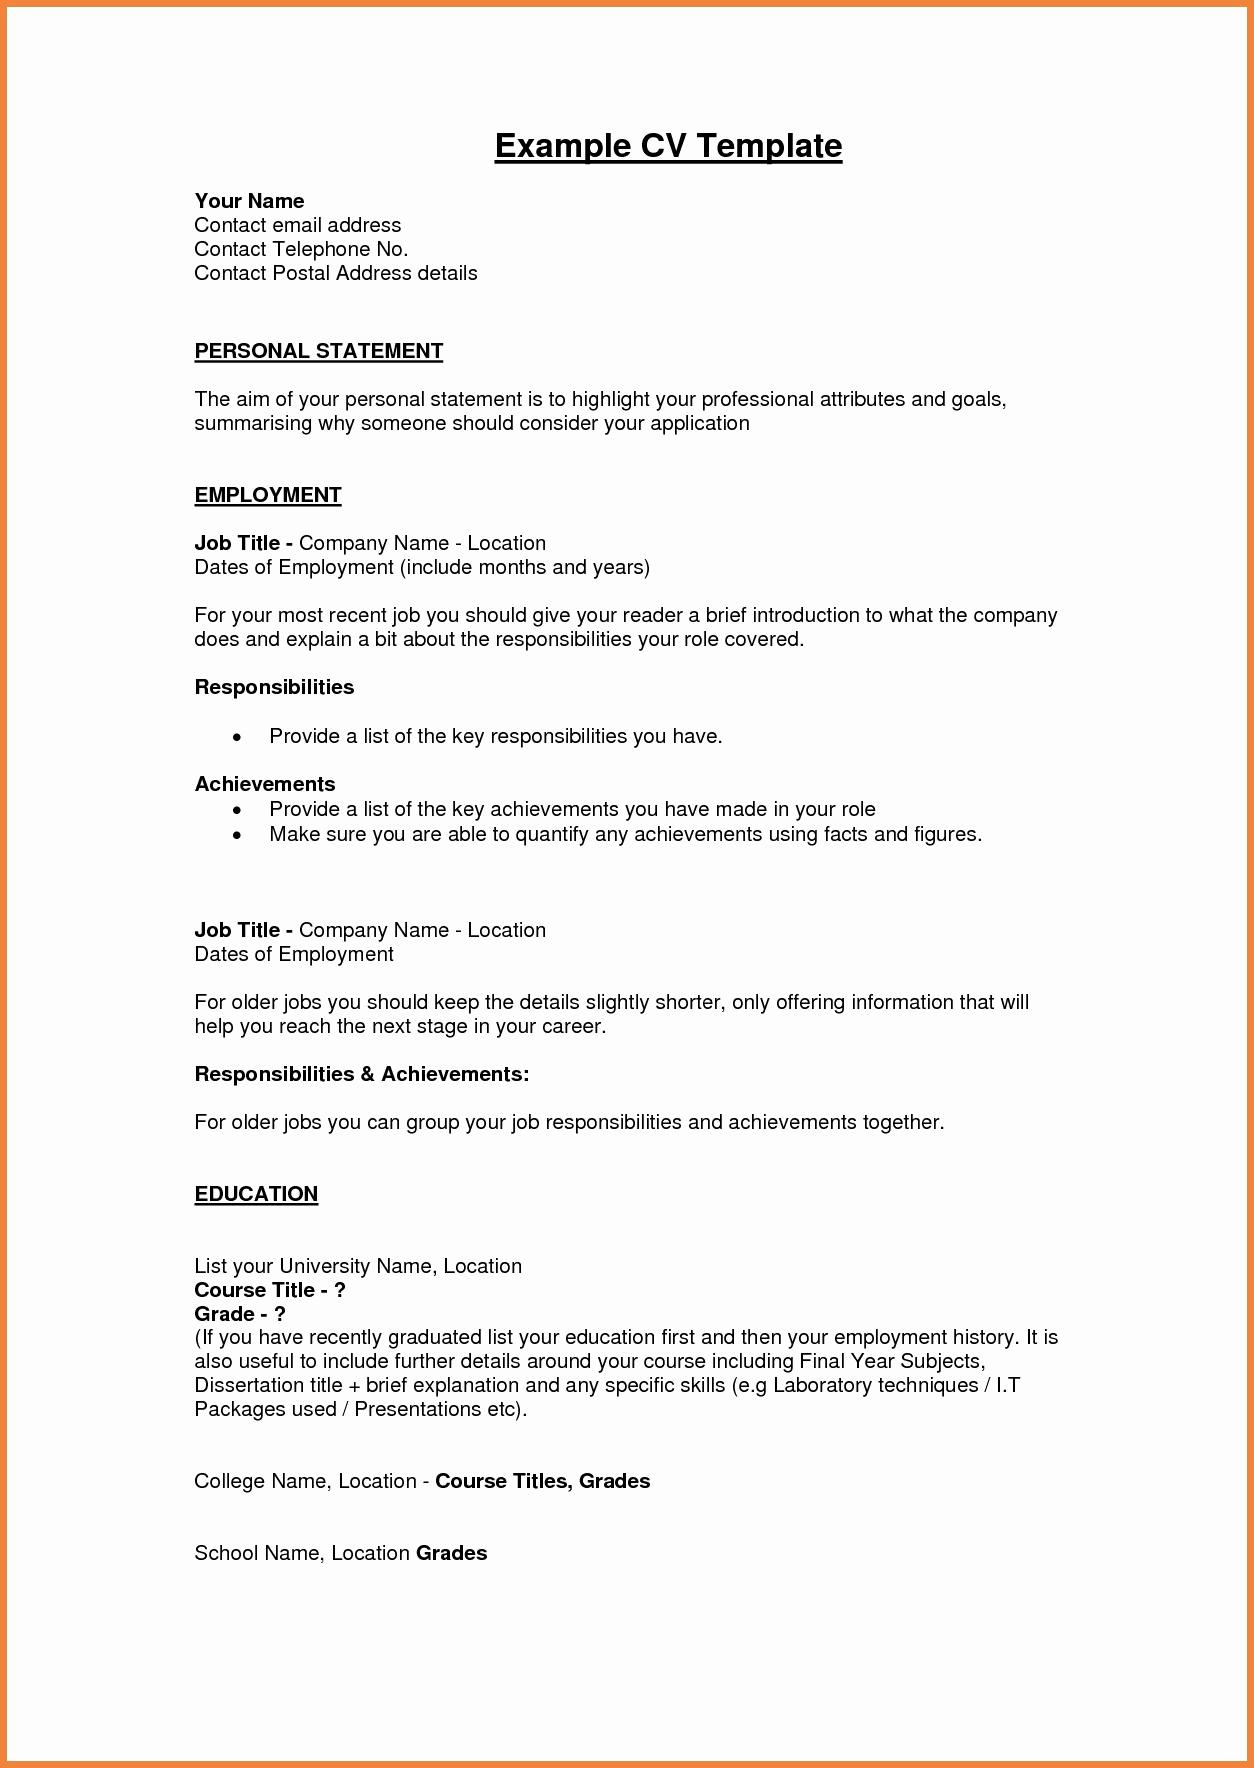 writing a resume profile example-Personal Profile format In Resume Luxury Luxury Resume Pdf Beautiful Resume Examples Pdf Best Resume Pdf 0d 6-s